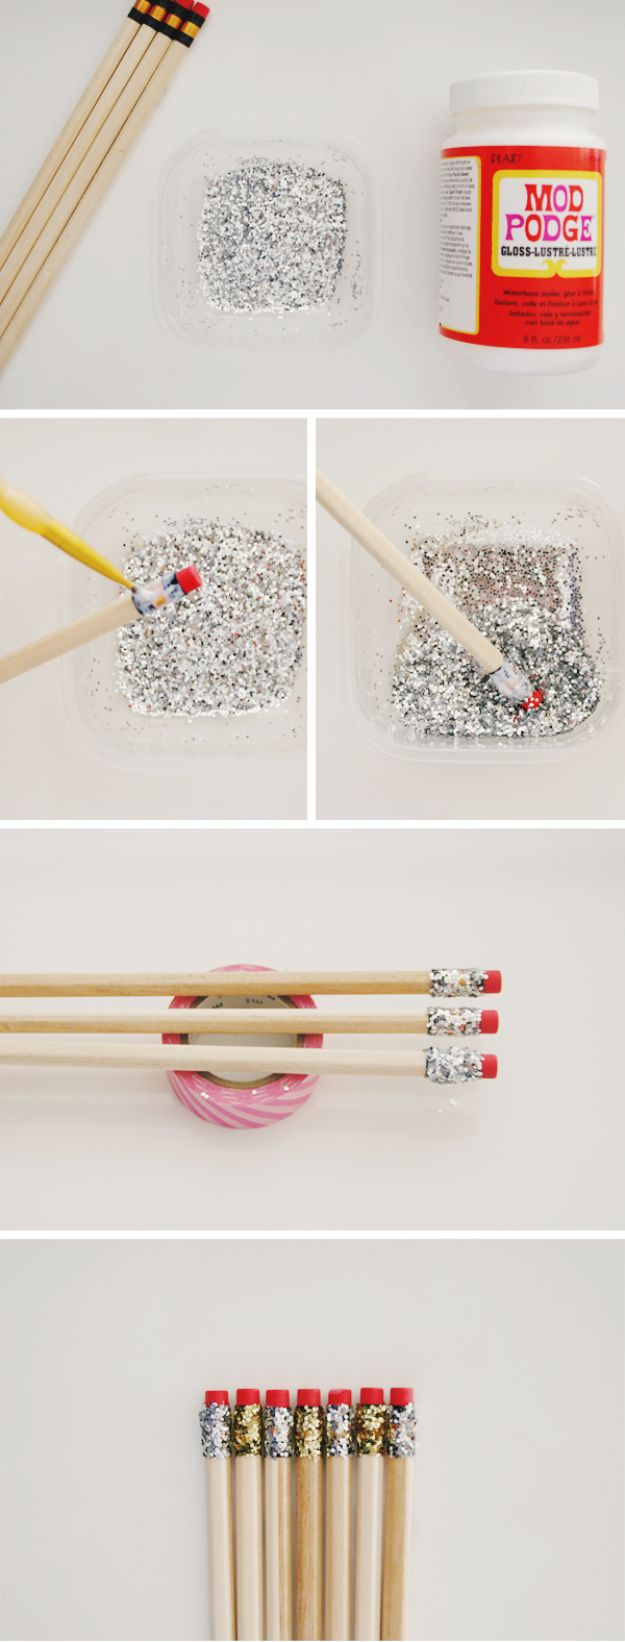 DIY Ideas WIth Glitter - DIY Glitter Pencils - Easy Crafts and Projects for Decoration, Gifts, and Bedroom Decor - How To Make Ombre, Mod Podge and Glitter Mason Jar Gift Ideas For Teens - Easy Clothes and Makeup Crafts For Teenagers #diyideas #glitter #crafts